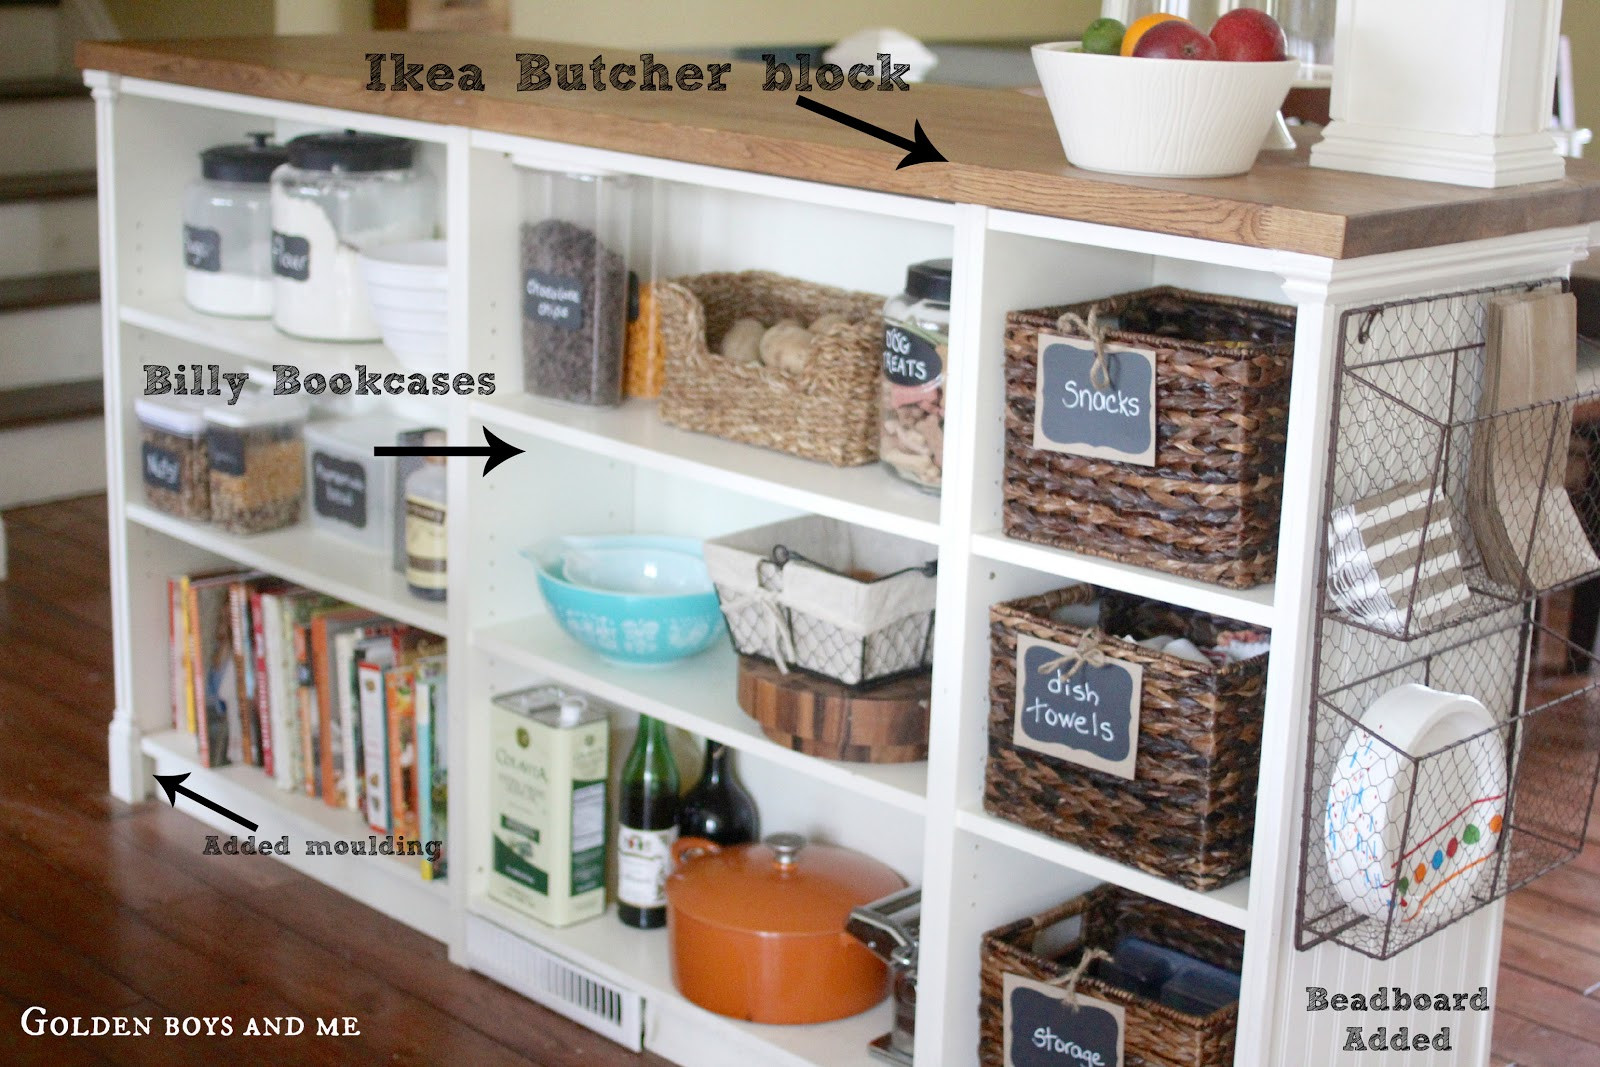 Best ideas about DIY Kitchen Island Ikea . Save or Pin Golden Boys and Me Kitchen Island Ikea Hack Now.